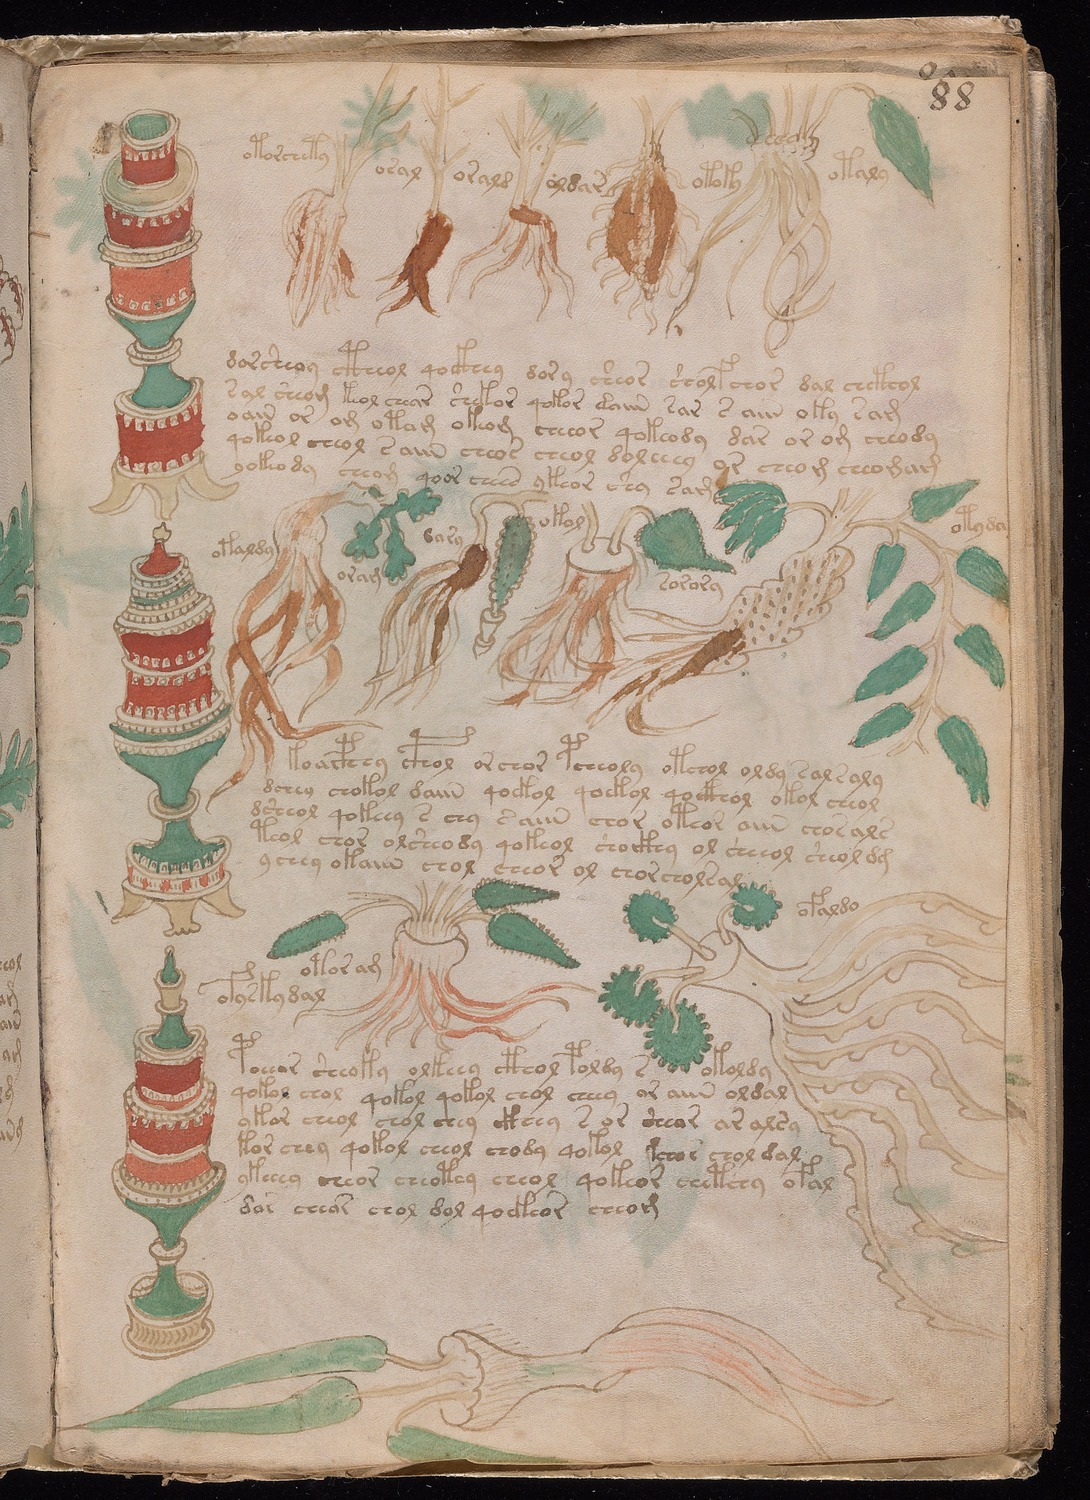 A page of the Voynich manuscript showing a number of plant like drawings and several paragraphs in an unknown language or encrypted text.